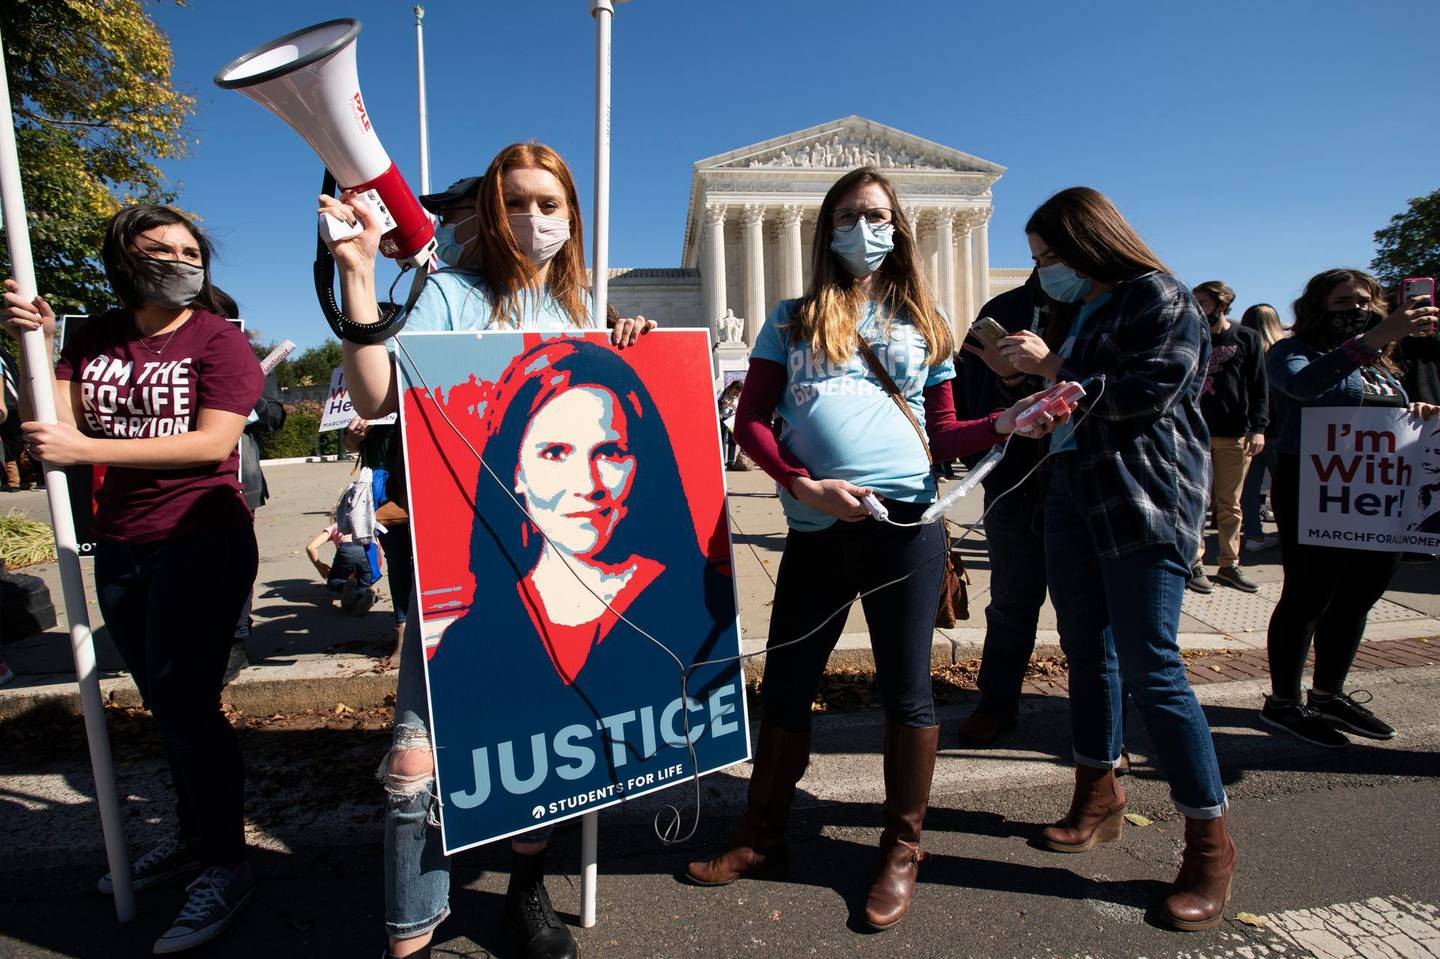 Supporters of Supreme Court nominee Amy Coney Barrett rally outside the Supreme Court building during the Women's March in Washington, Saturday, Oct. 17, 2020. (AP Photo/Jose Luis Magana)